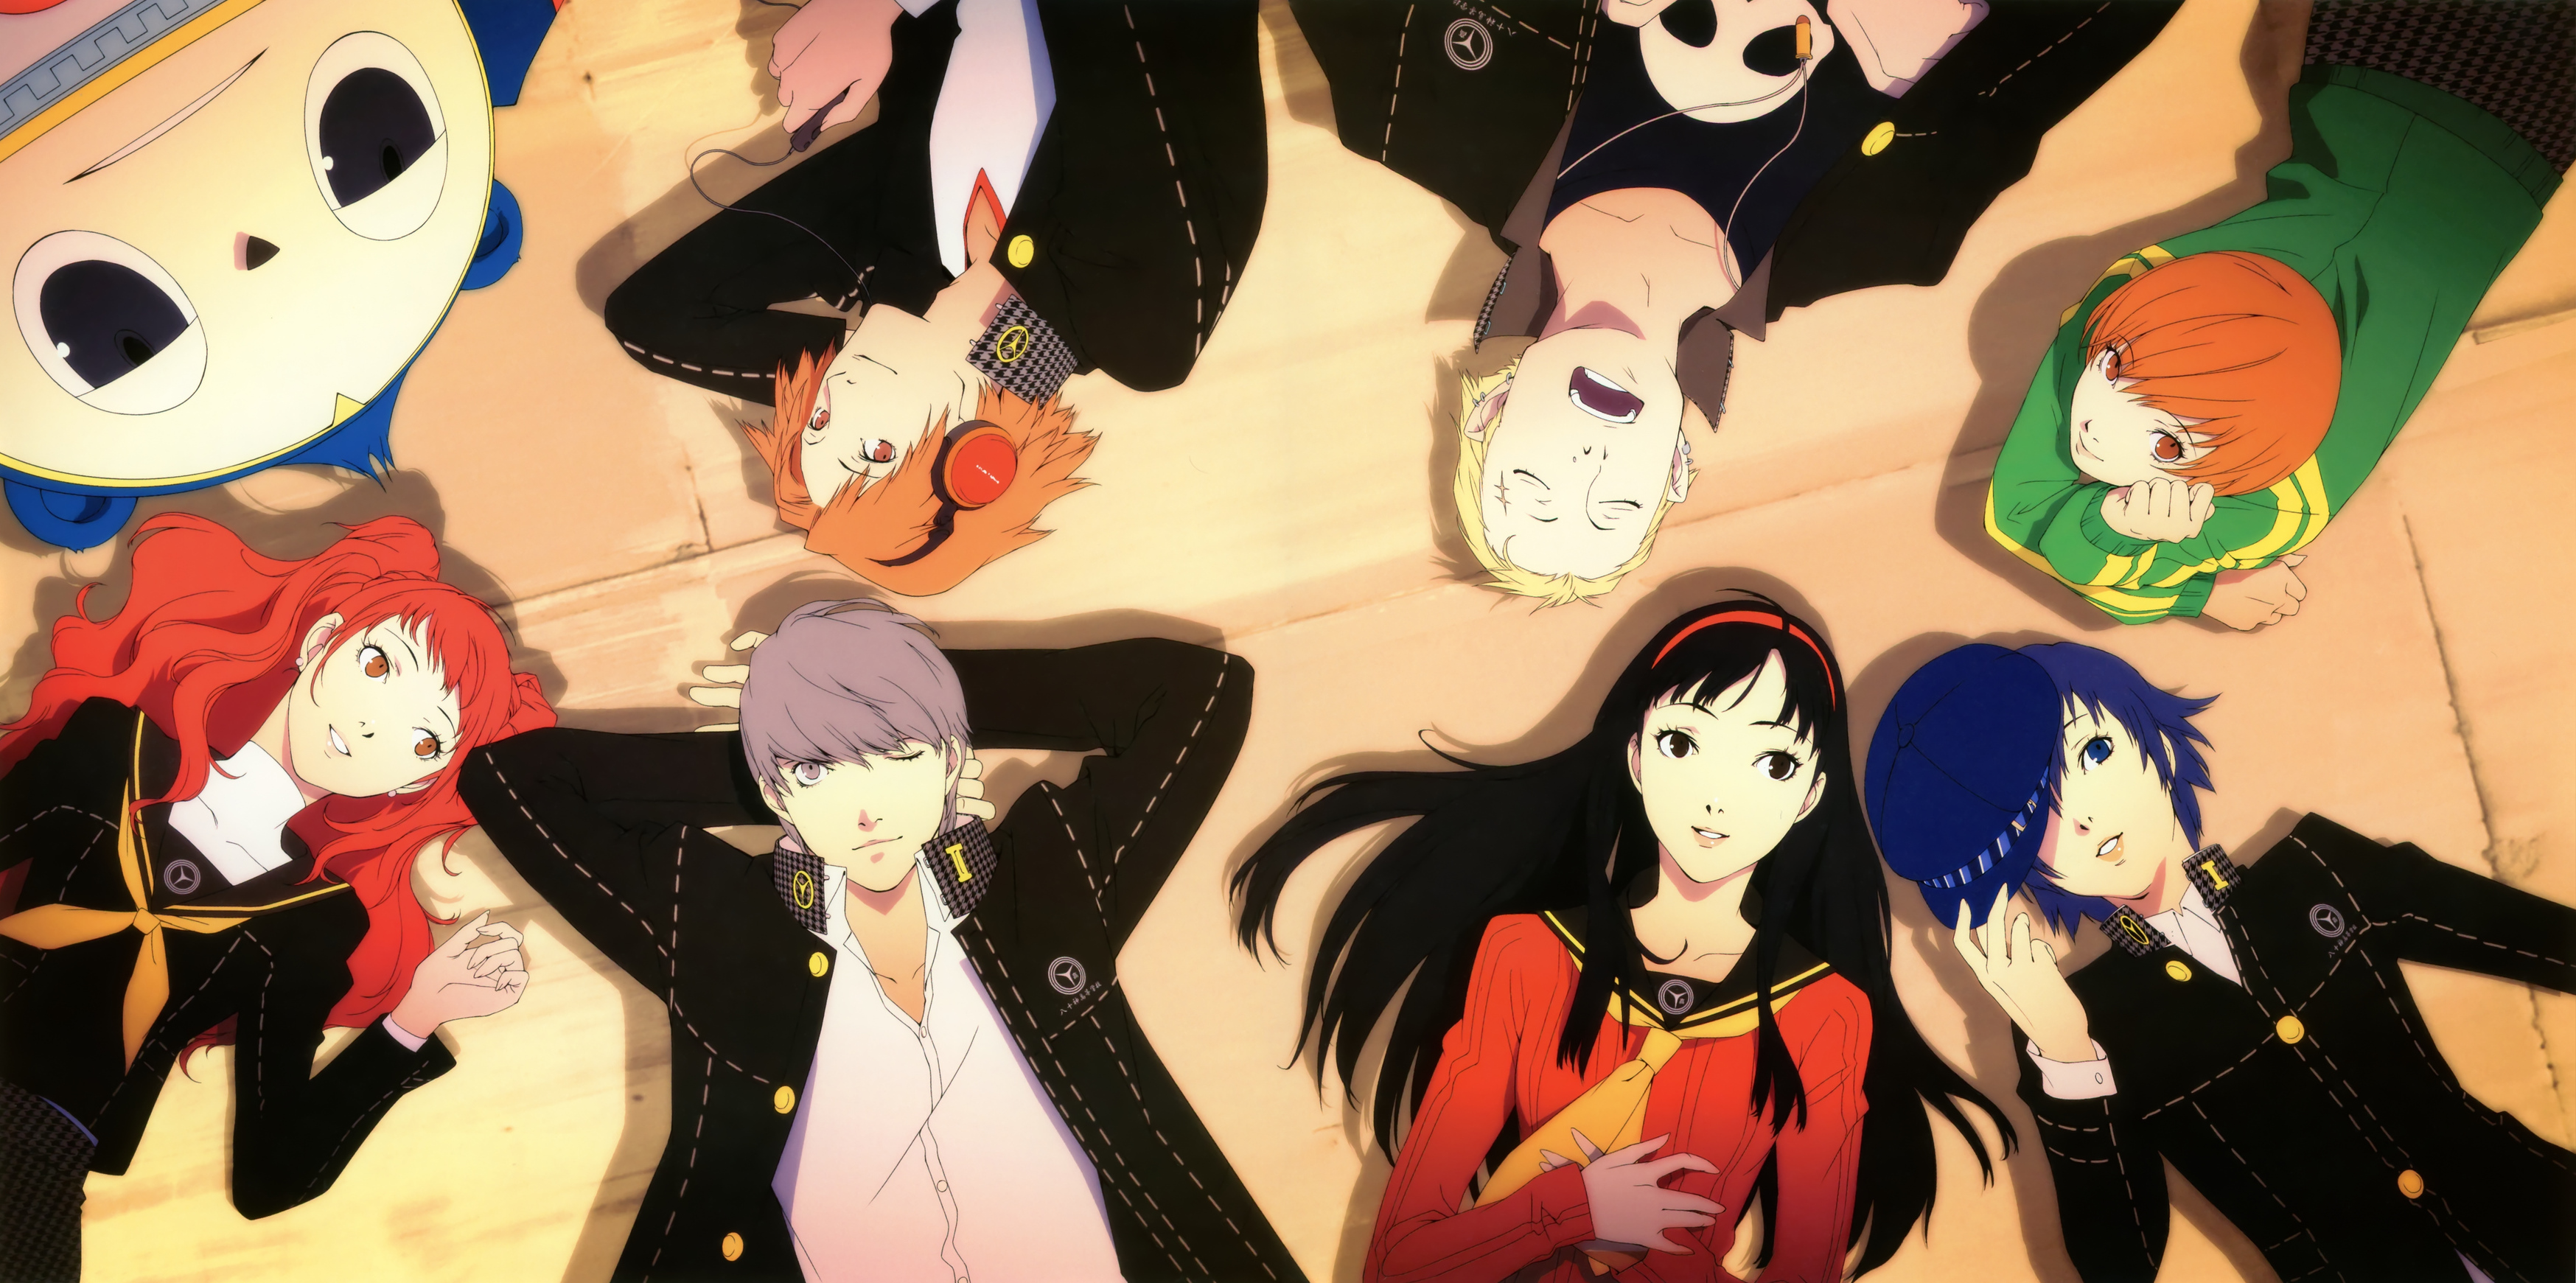 http://images.wikia.com/megamitensei/images/e/ee/Persona_4_investigation_team_2.jpg